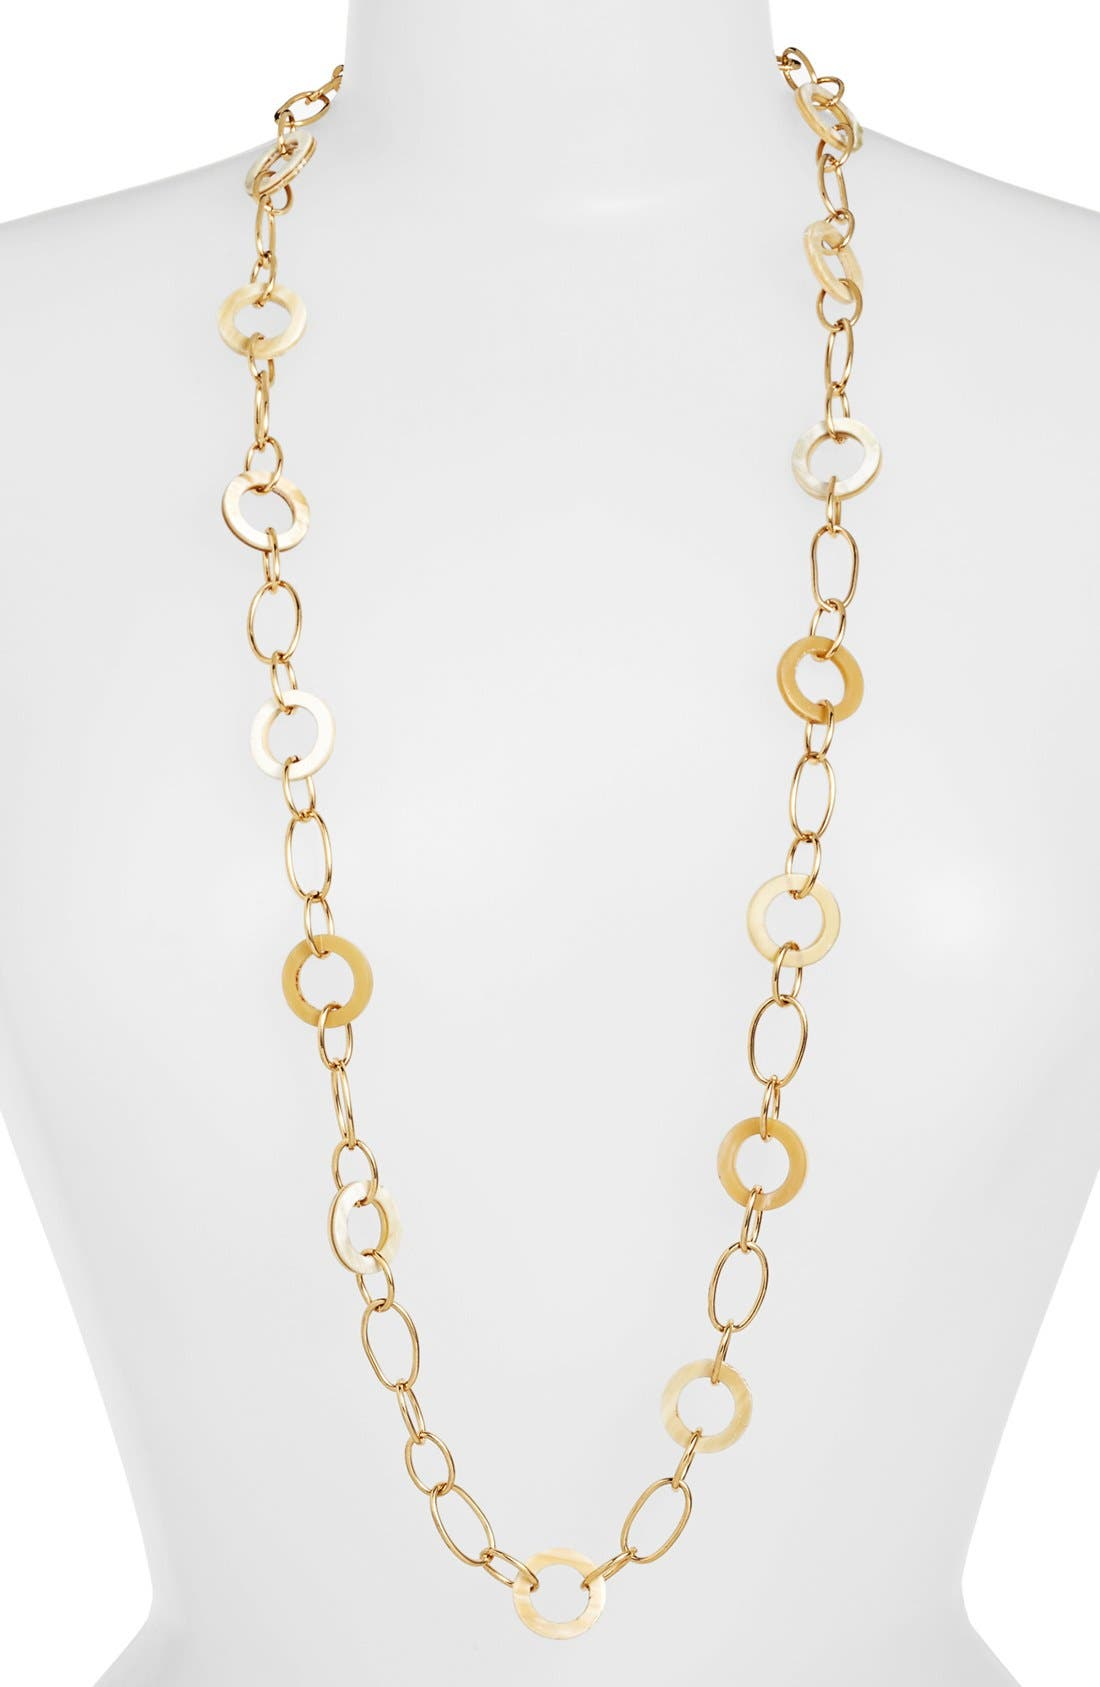 Main Image - Lauren Ralph Lauren Horn & Chain Link Necklace